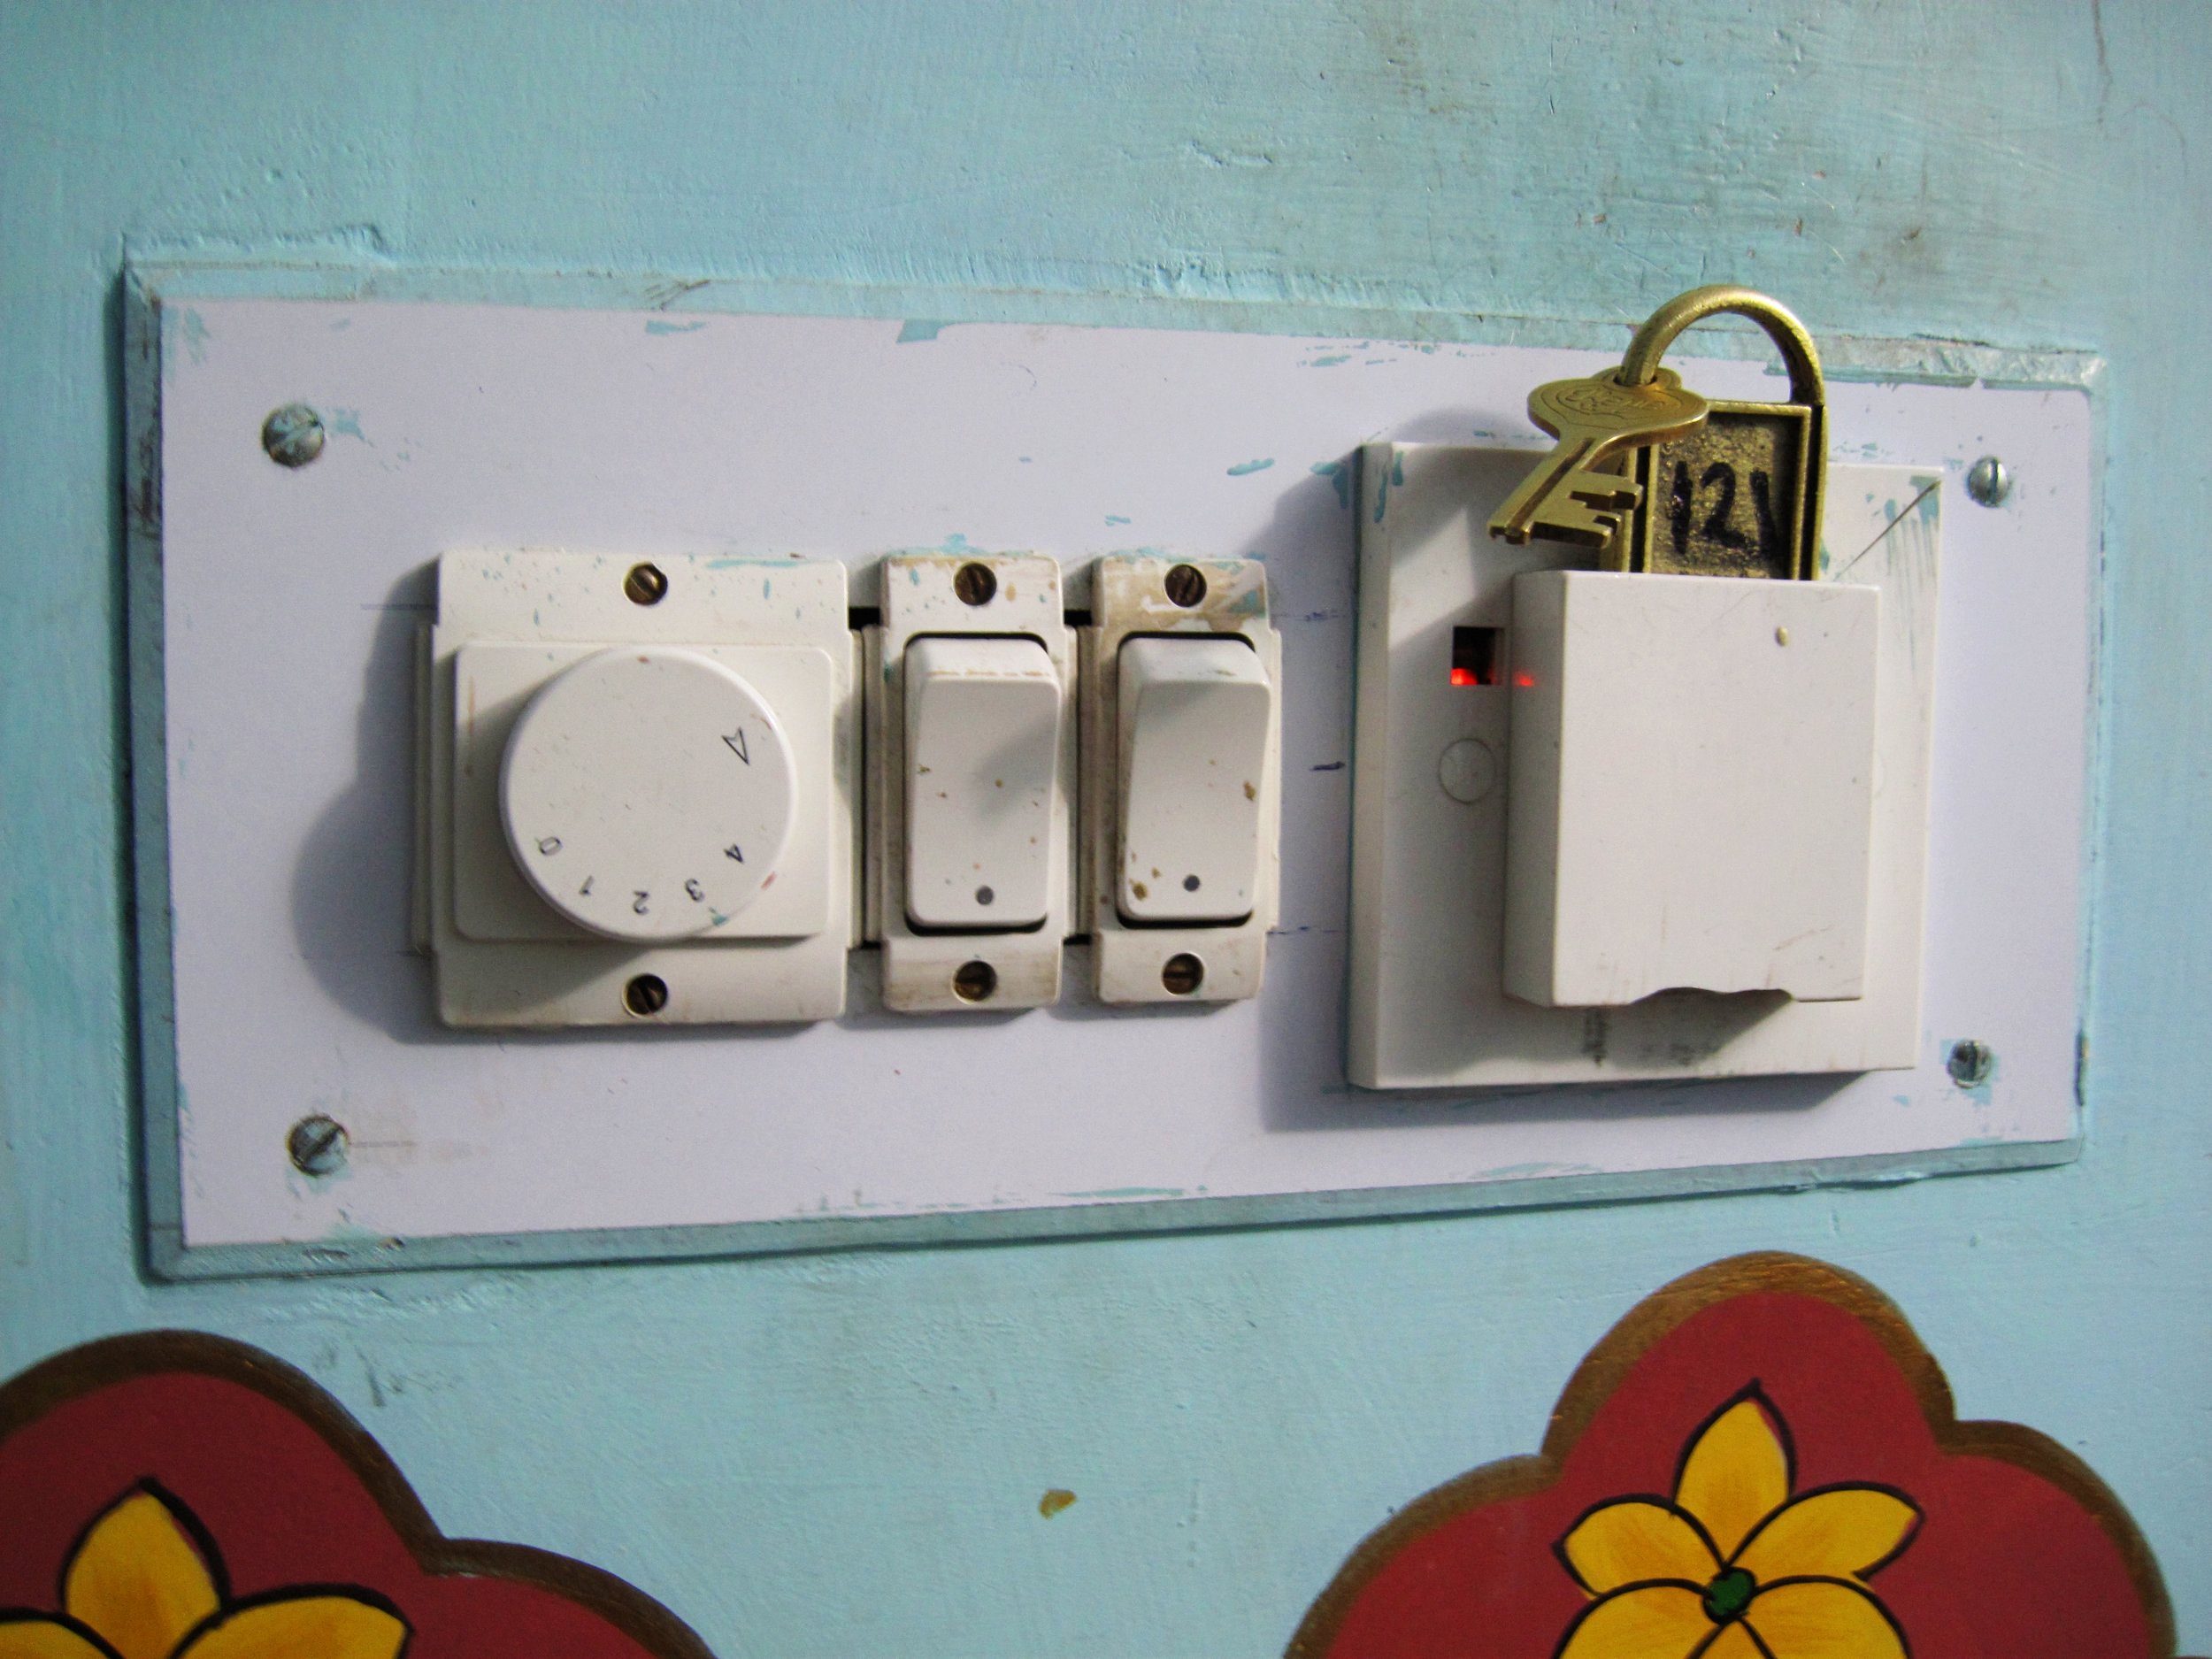 electricity-activating key jodhpur, India - Ingenious device to incentivize people not to lose their keys. No key, no lights. No TV. No Internet. Eva couldn't figure out why the metal key didn't electrocute her when she inserted it into the slot. Does anyone know the answer to this?